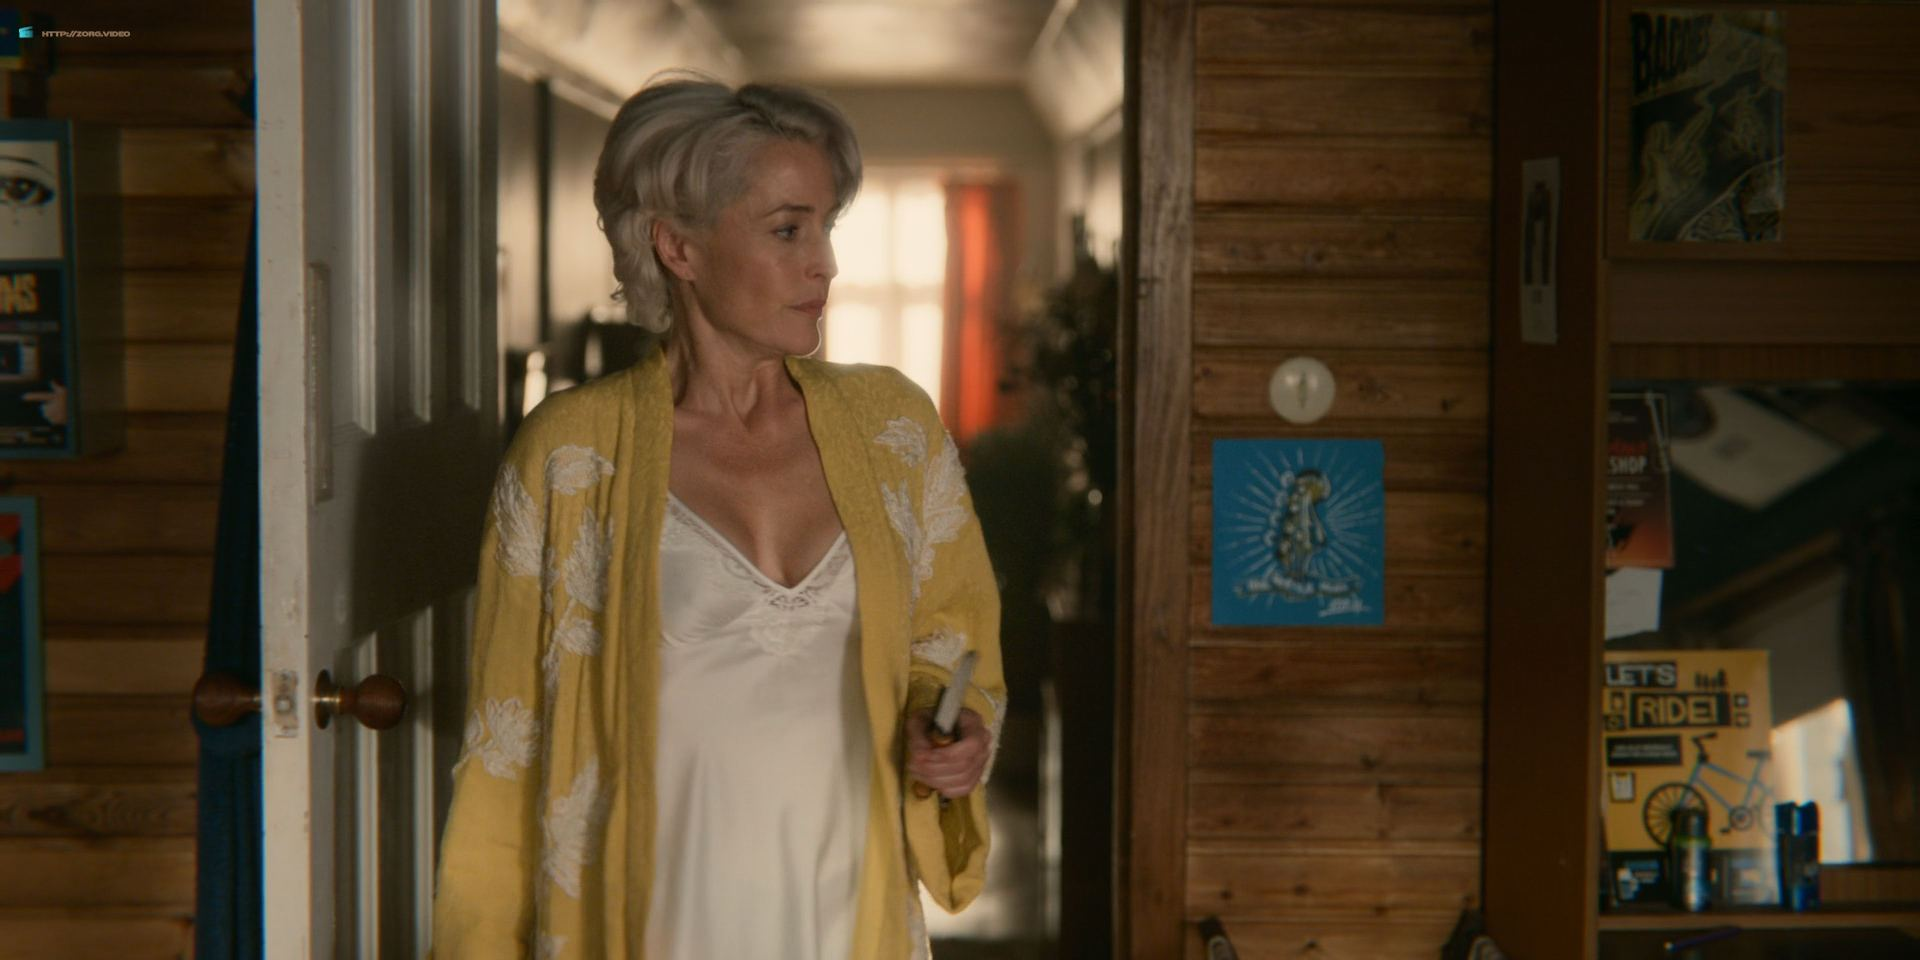 0013033650732_07_Tanya-Reynolds-nude-topless-Gillian-Anderson-hot-Sex-Education-2018-s1e3-HD-1080p-03.jpg